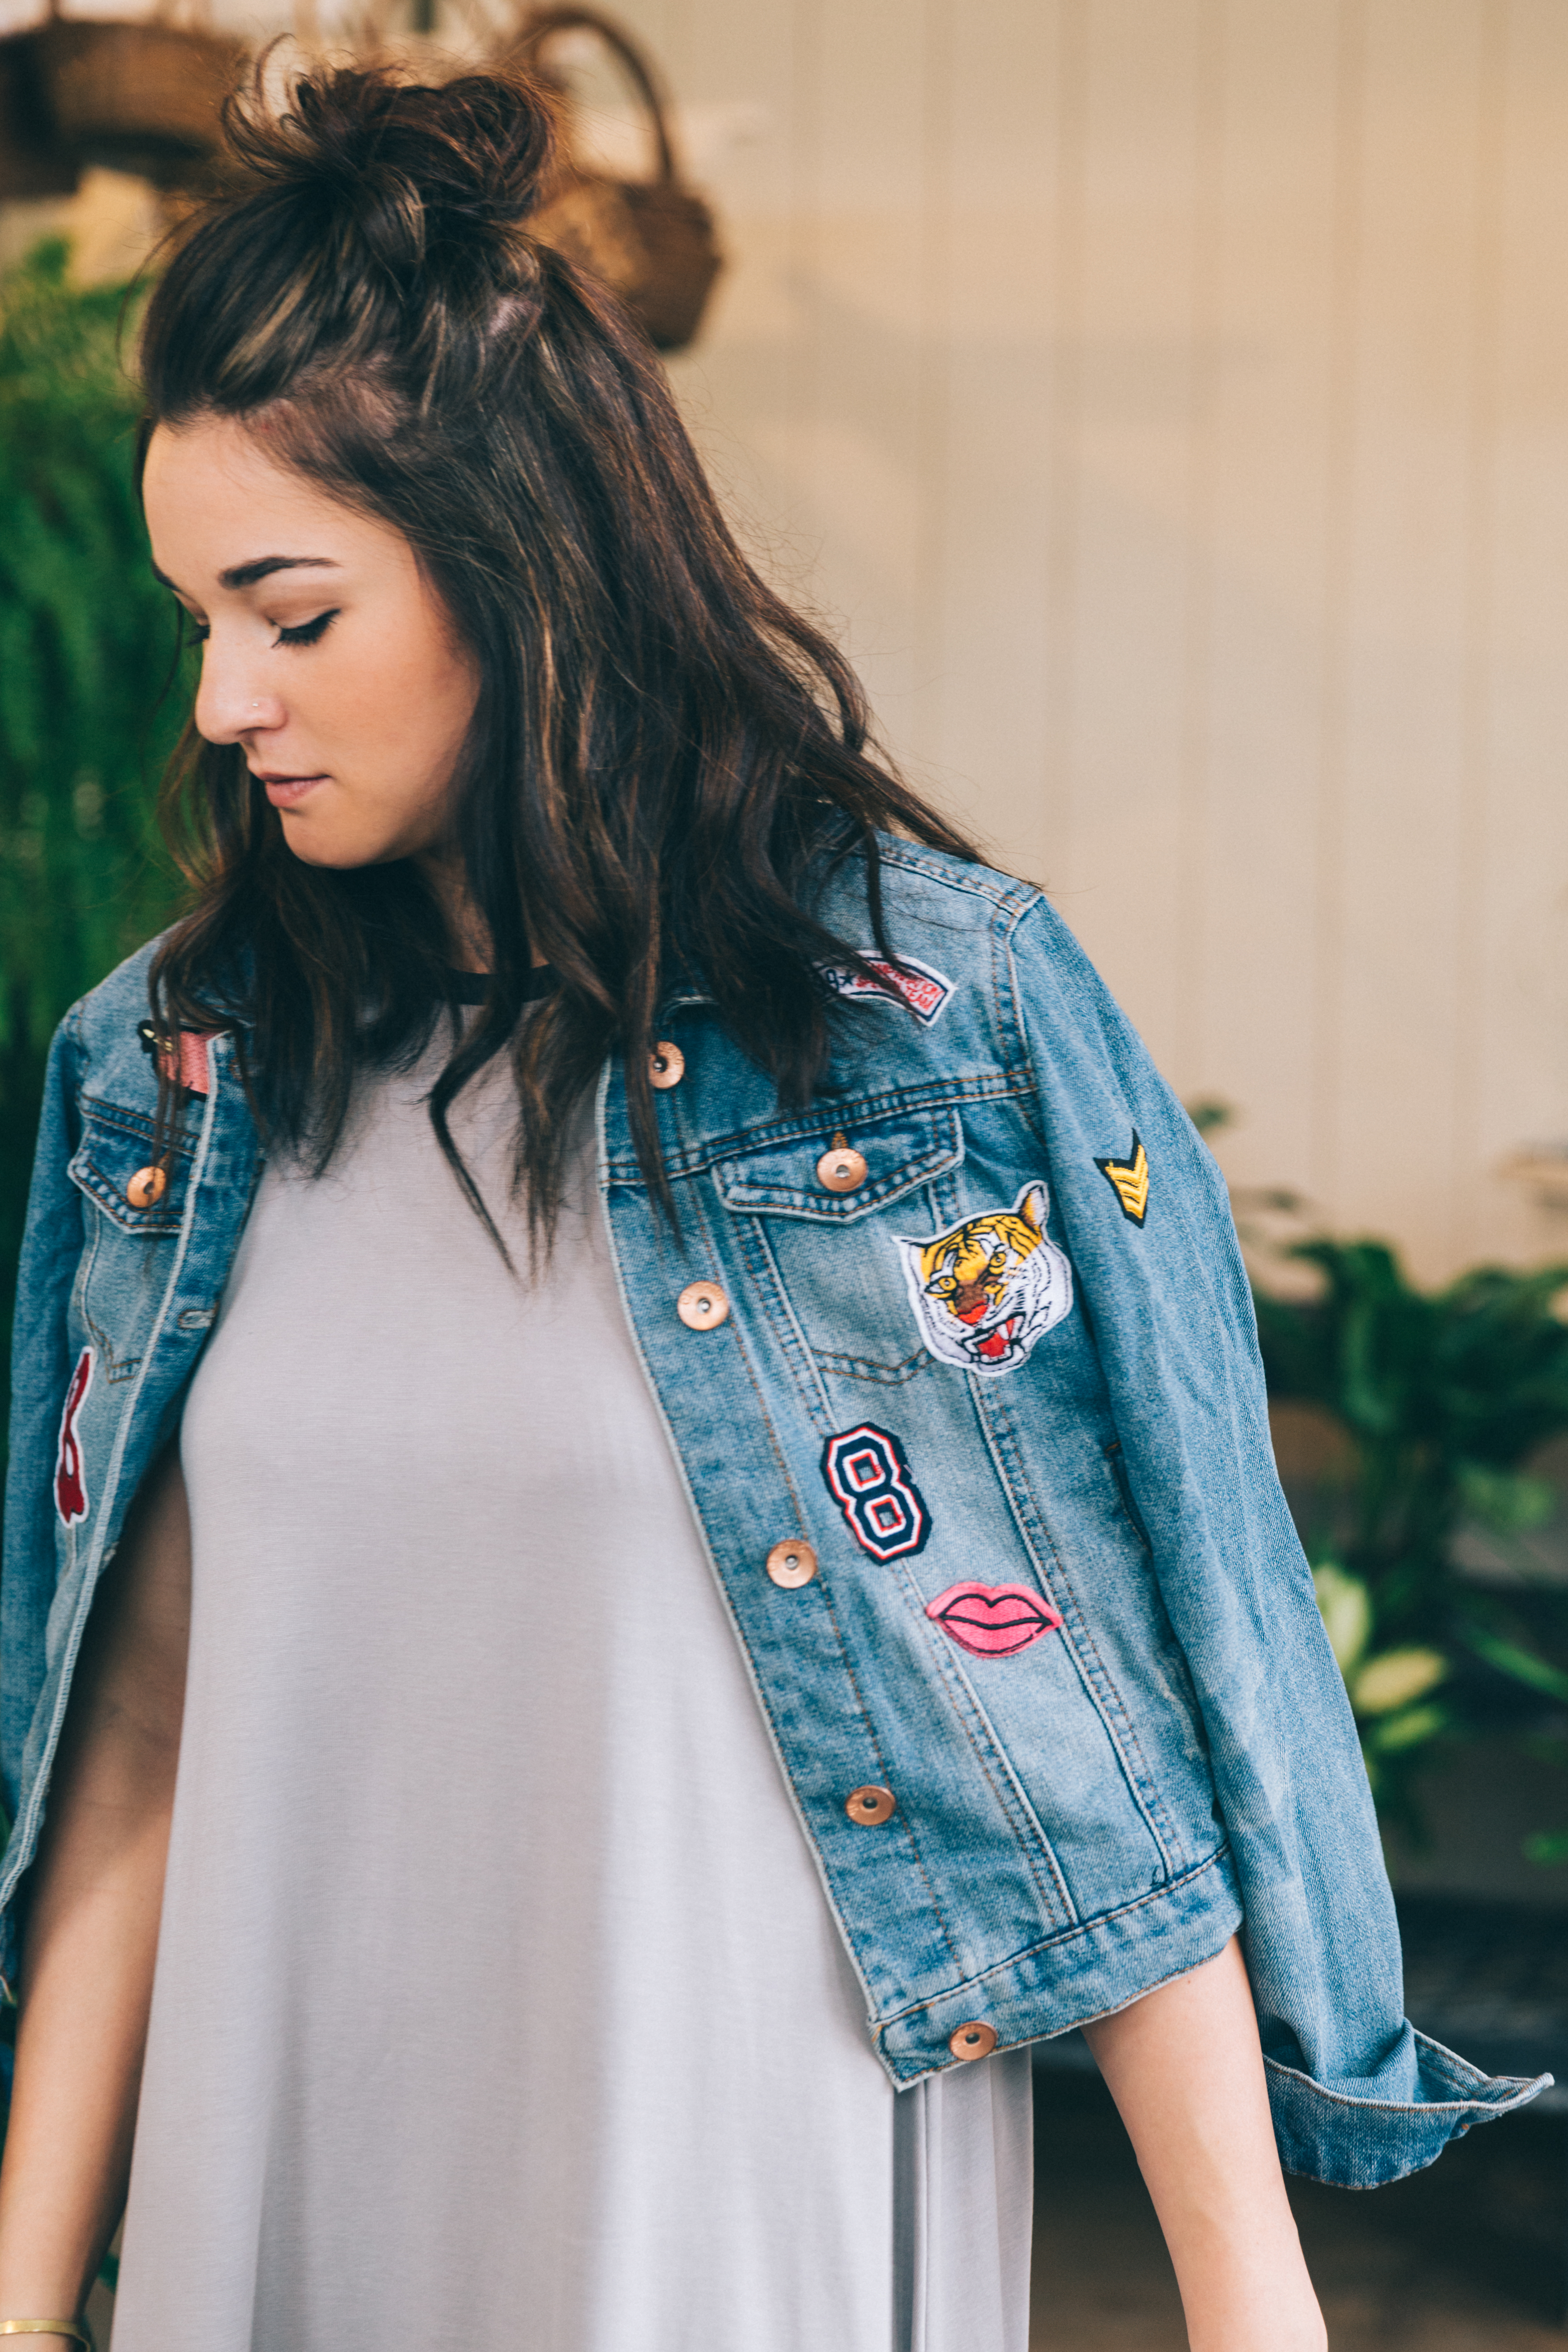 Girl in a dress and patch denim jacket.